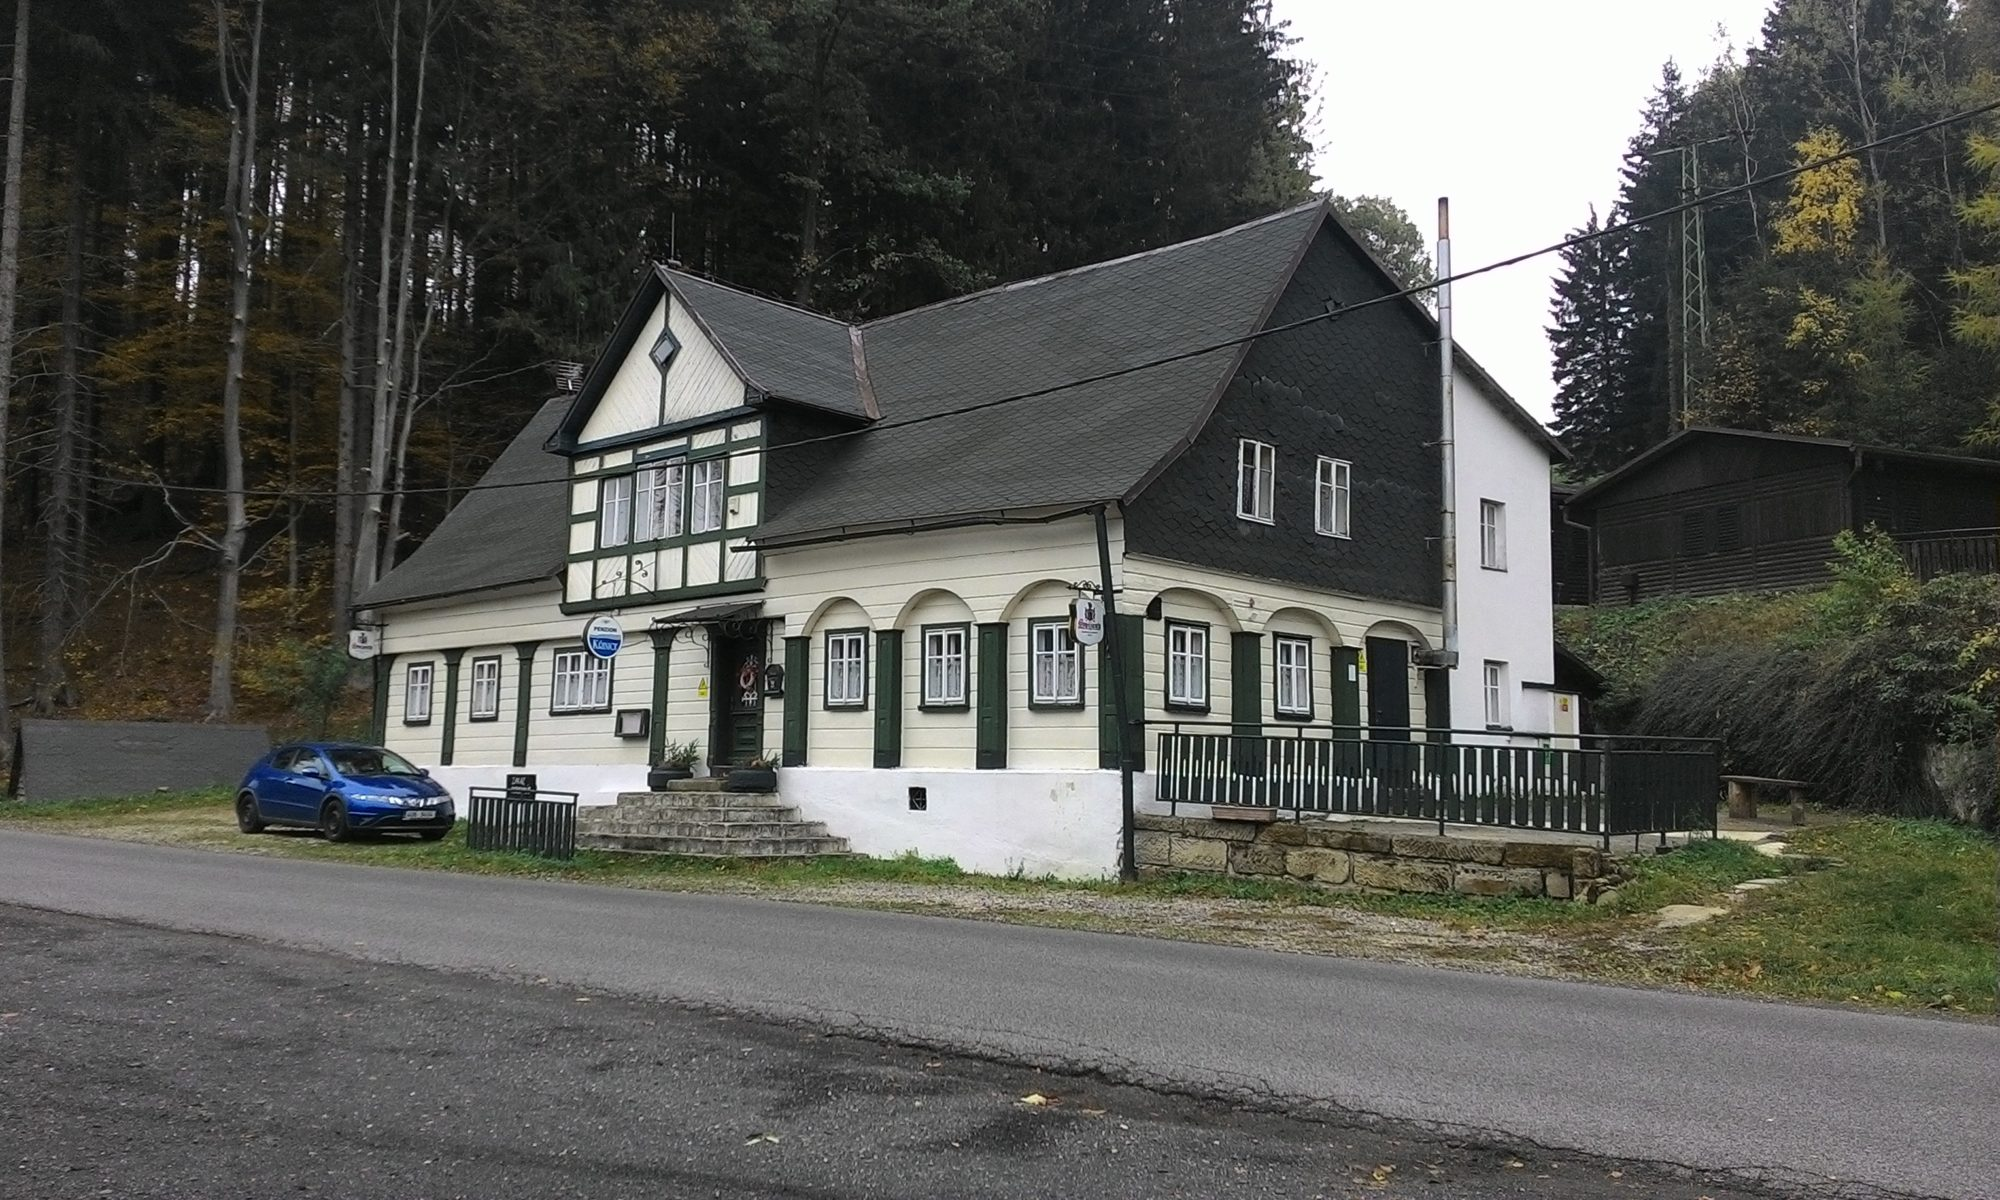 Lodge Kirnitzsch